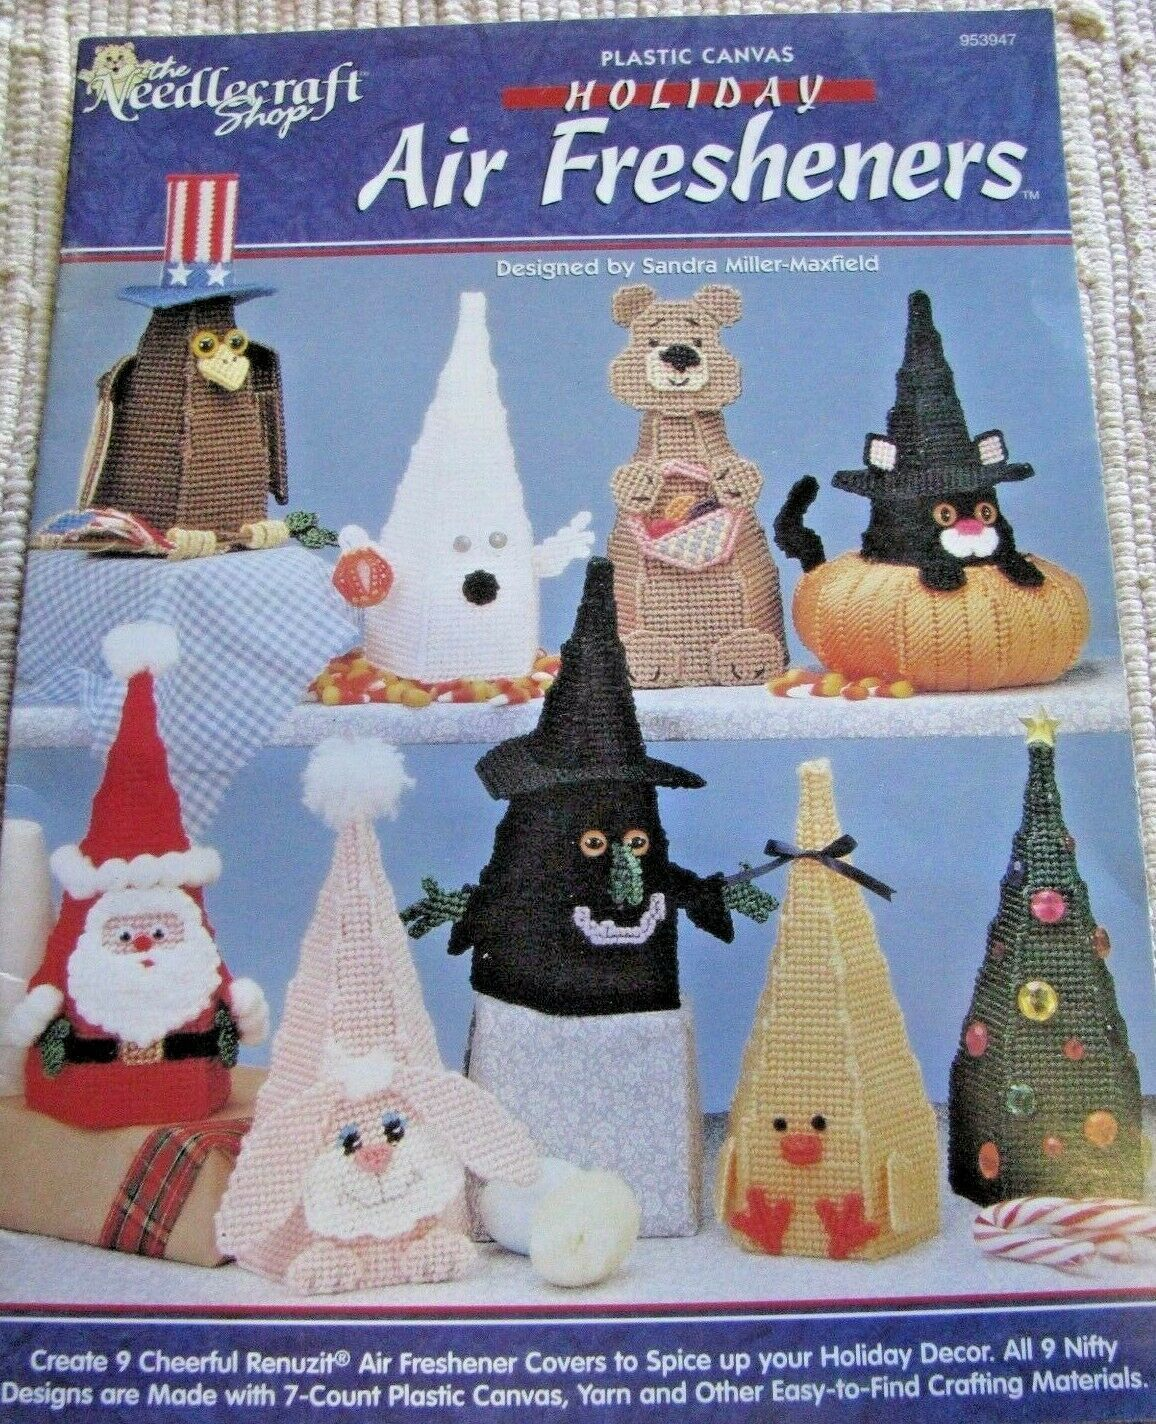 The Needlecraft shop plastic canvas Holiday Air Fresheners Booklet # 953947  - $9.89